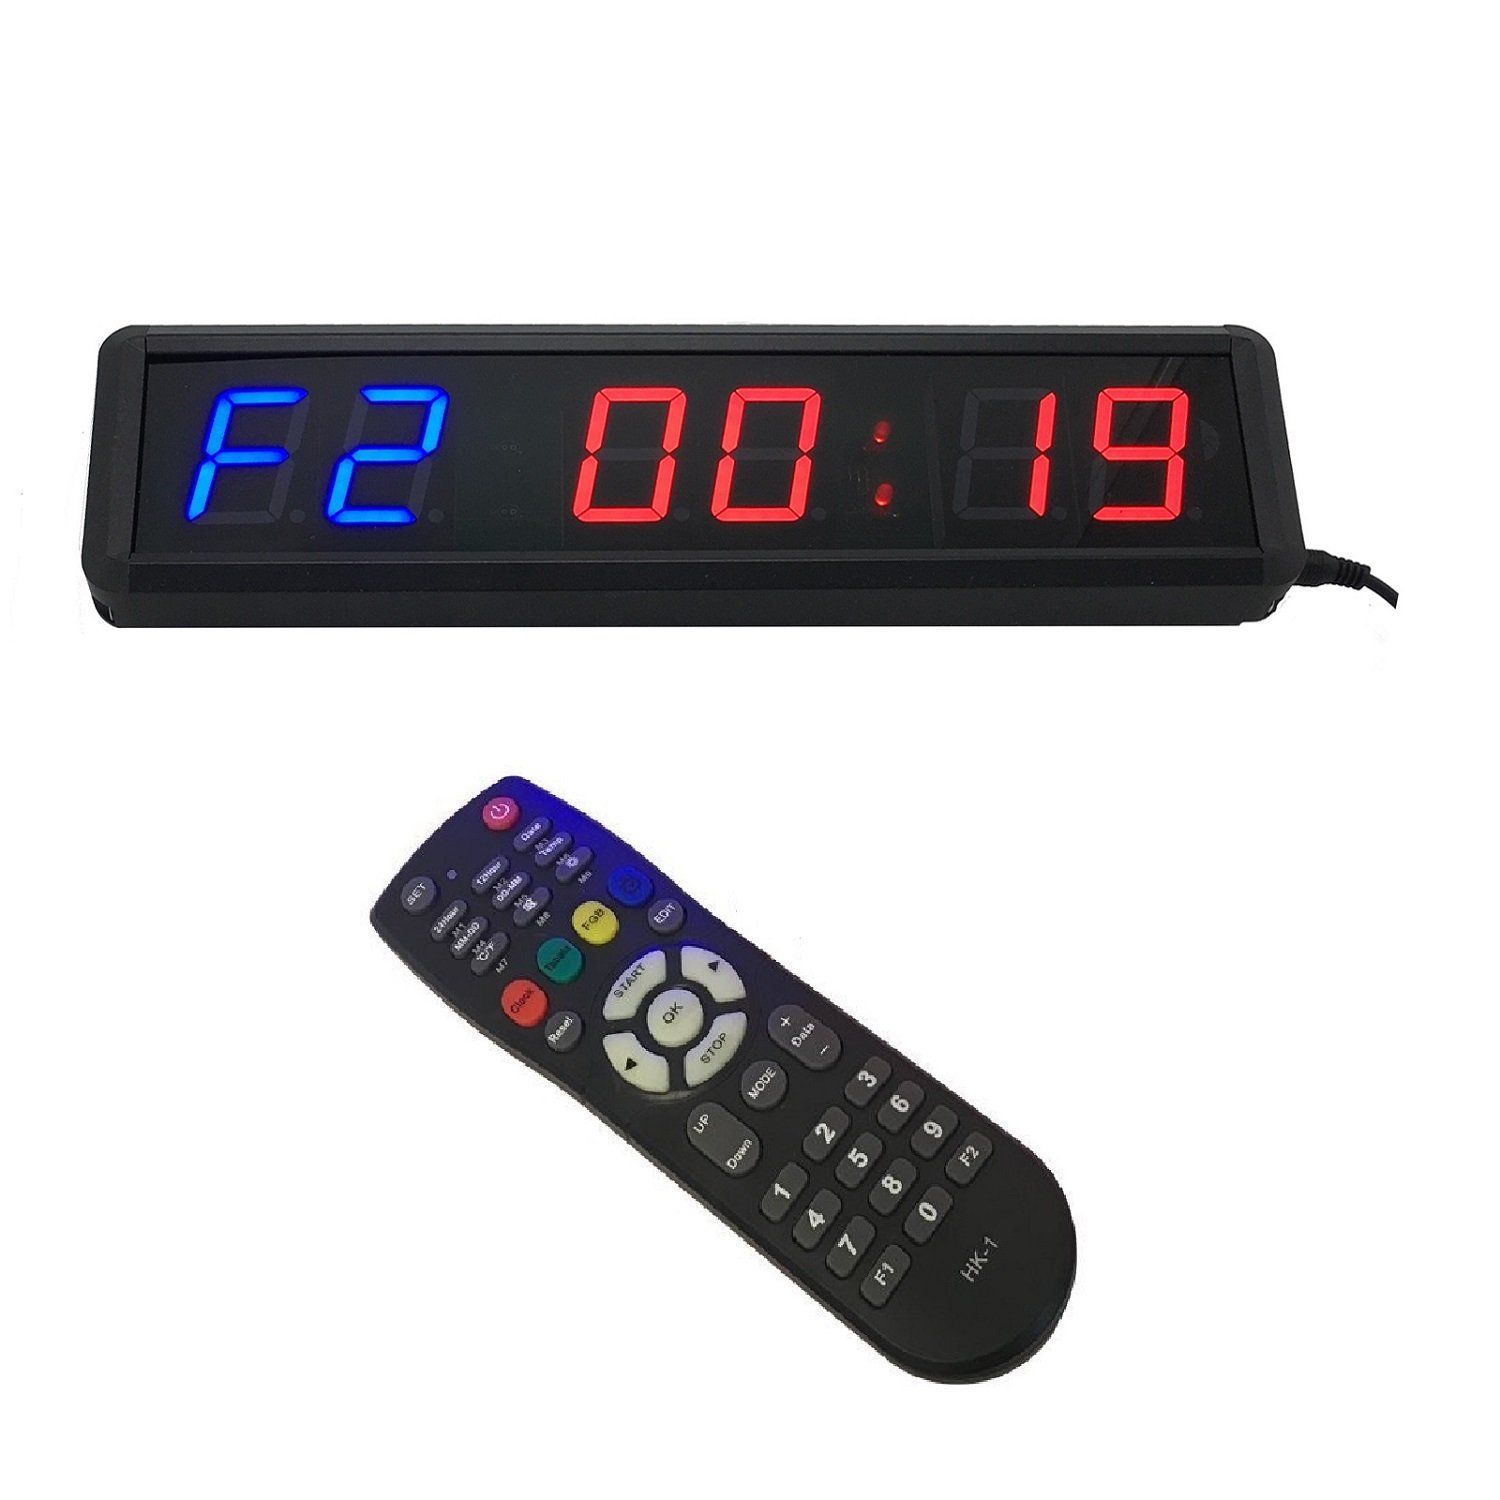 1.8'' LED Interval Workout Timer Countdown Stopwatch For Garage CrossFit Training BTB SIGN CFT006